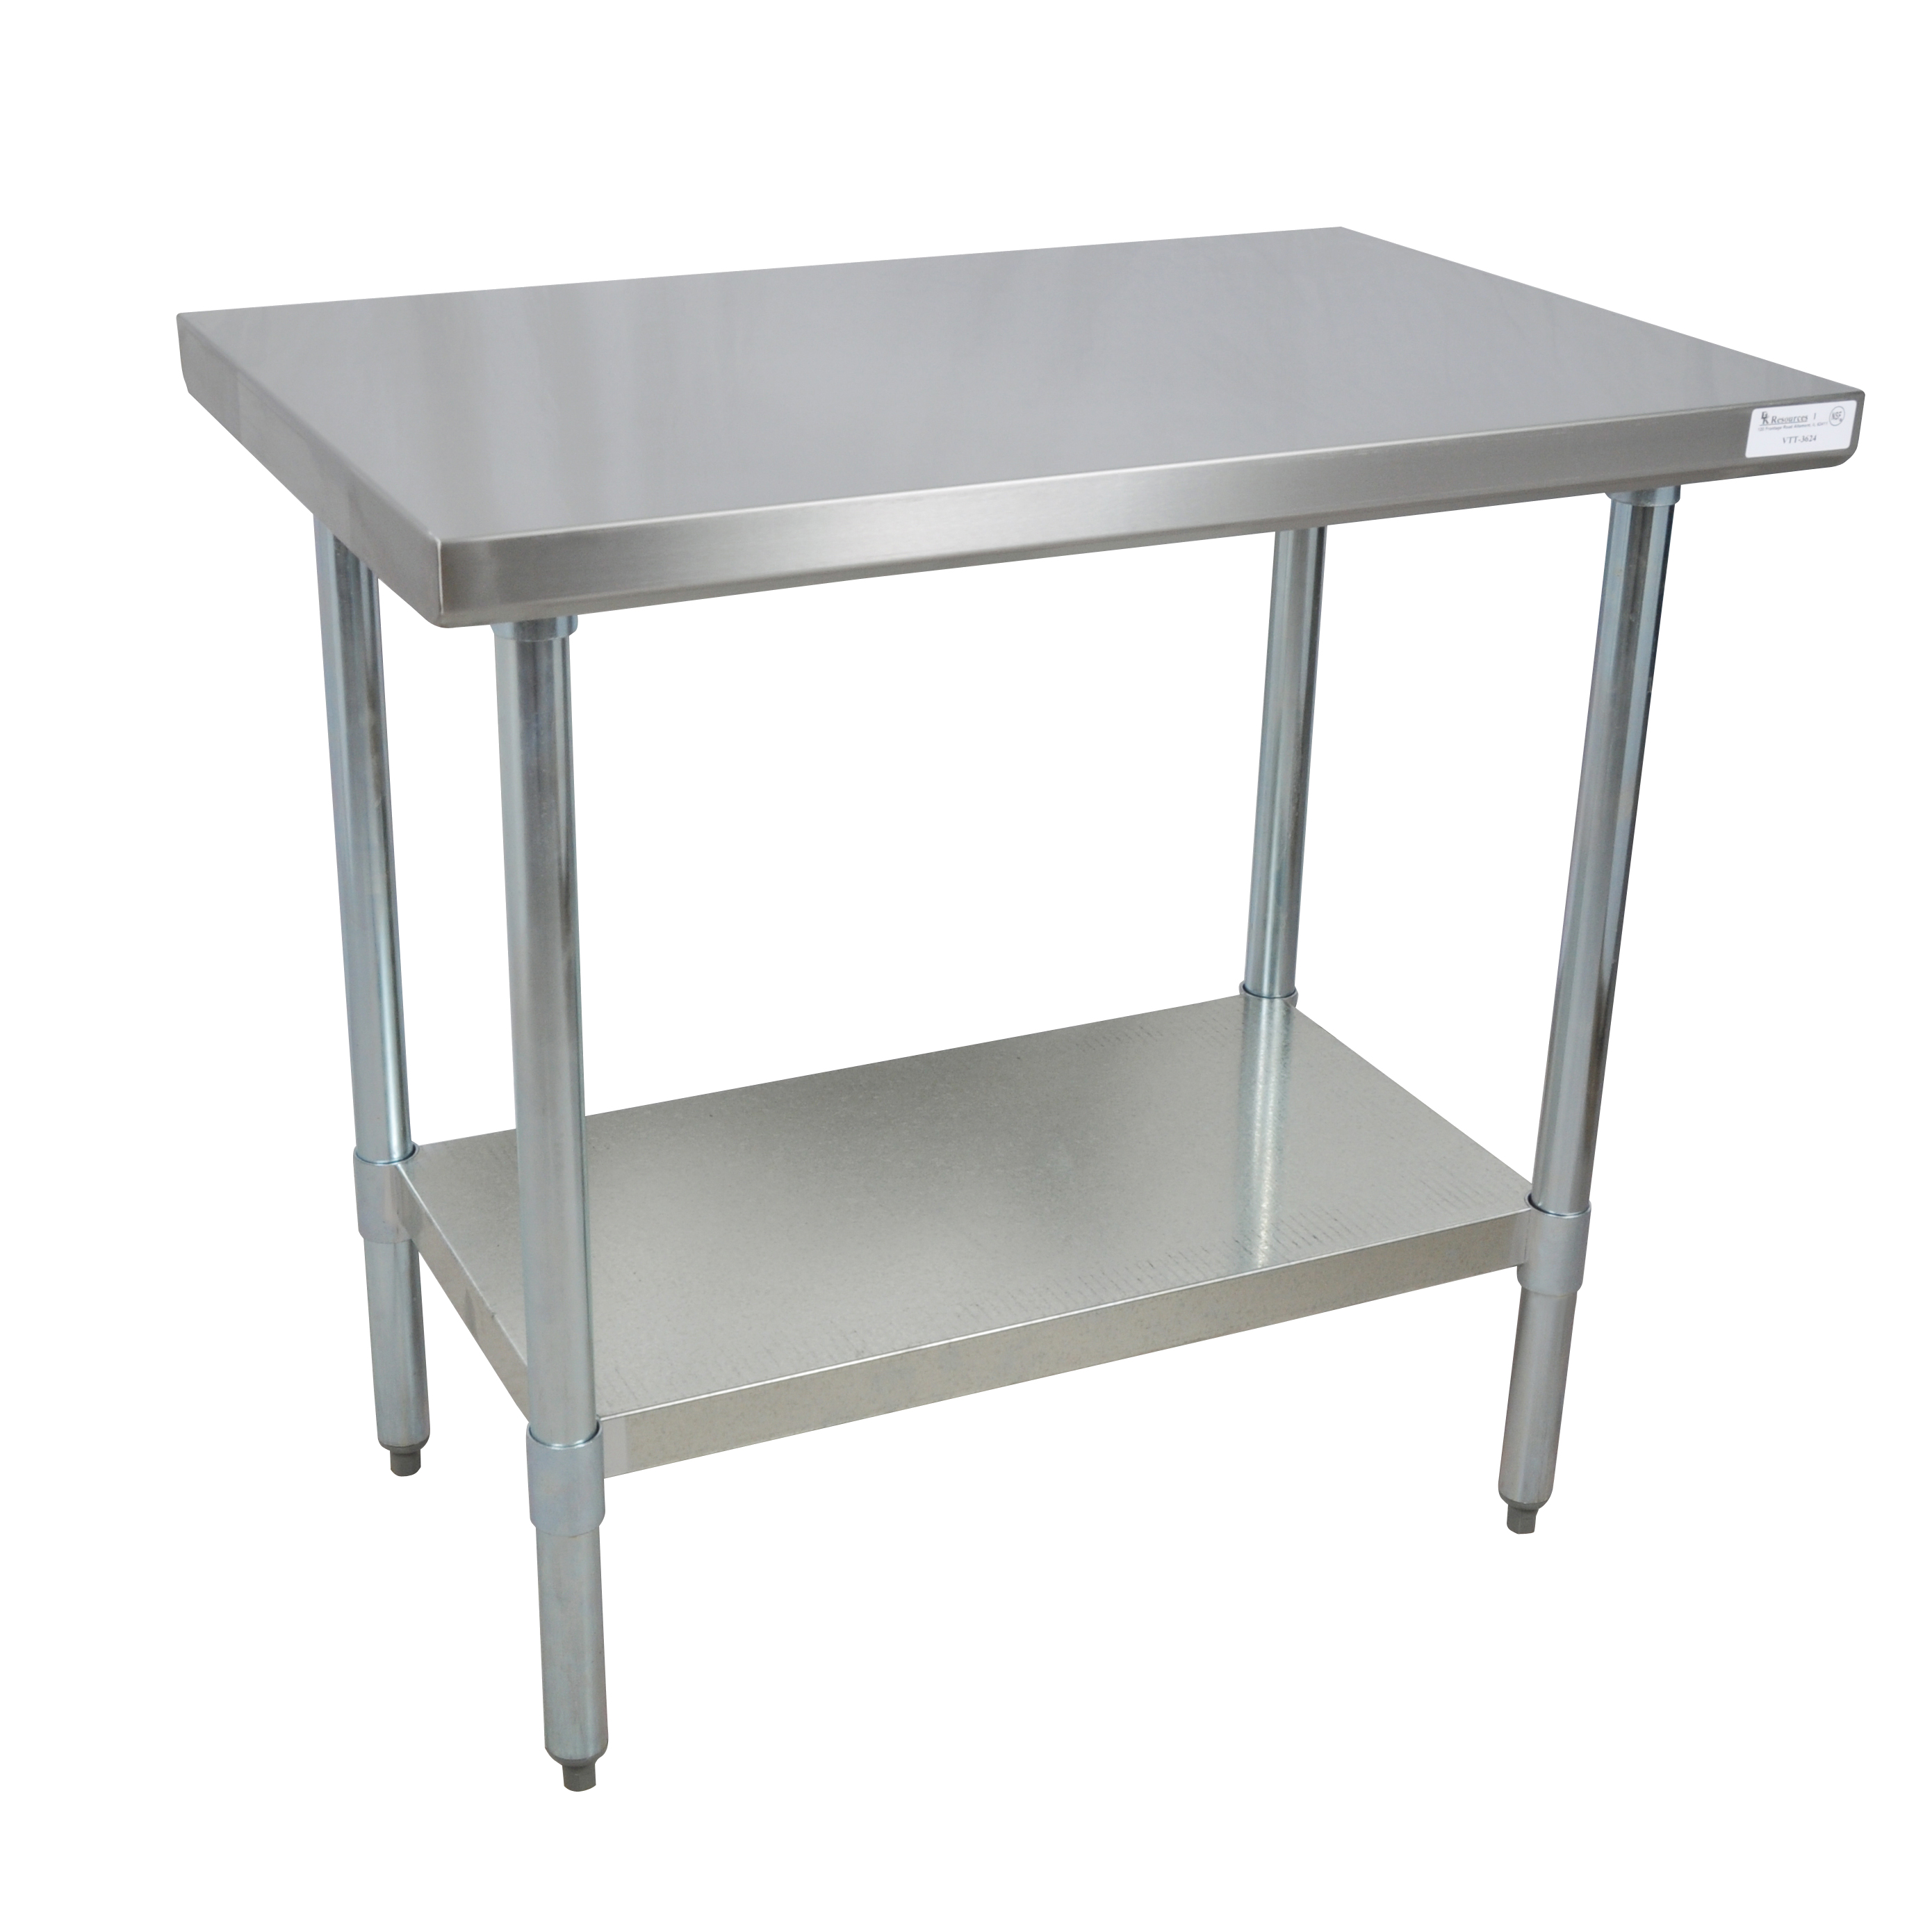 BK Resources CTT-3624 work table,  36